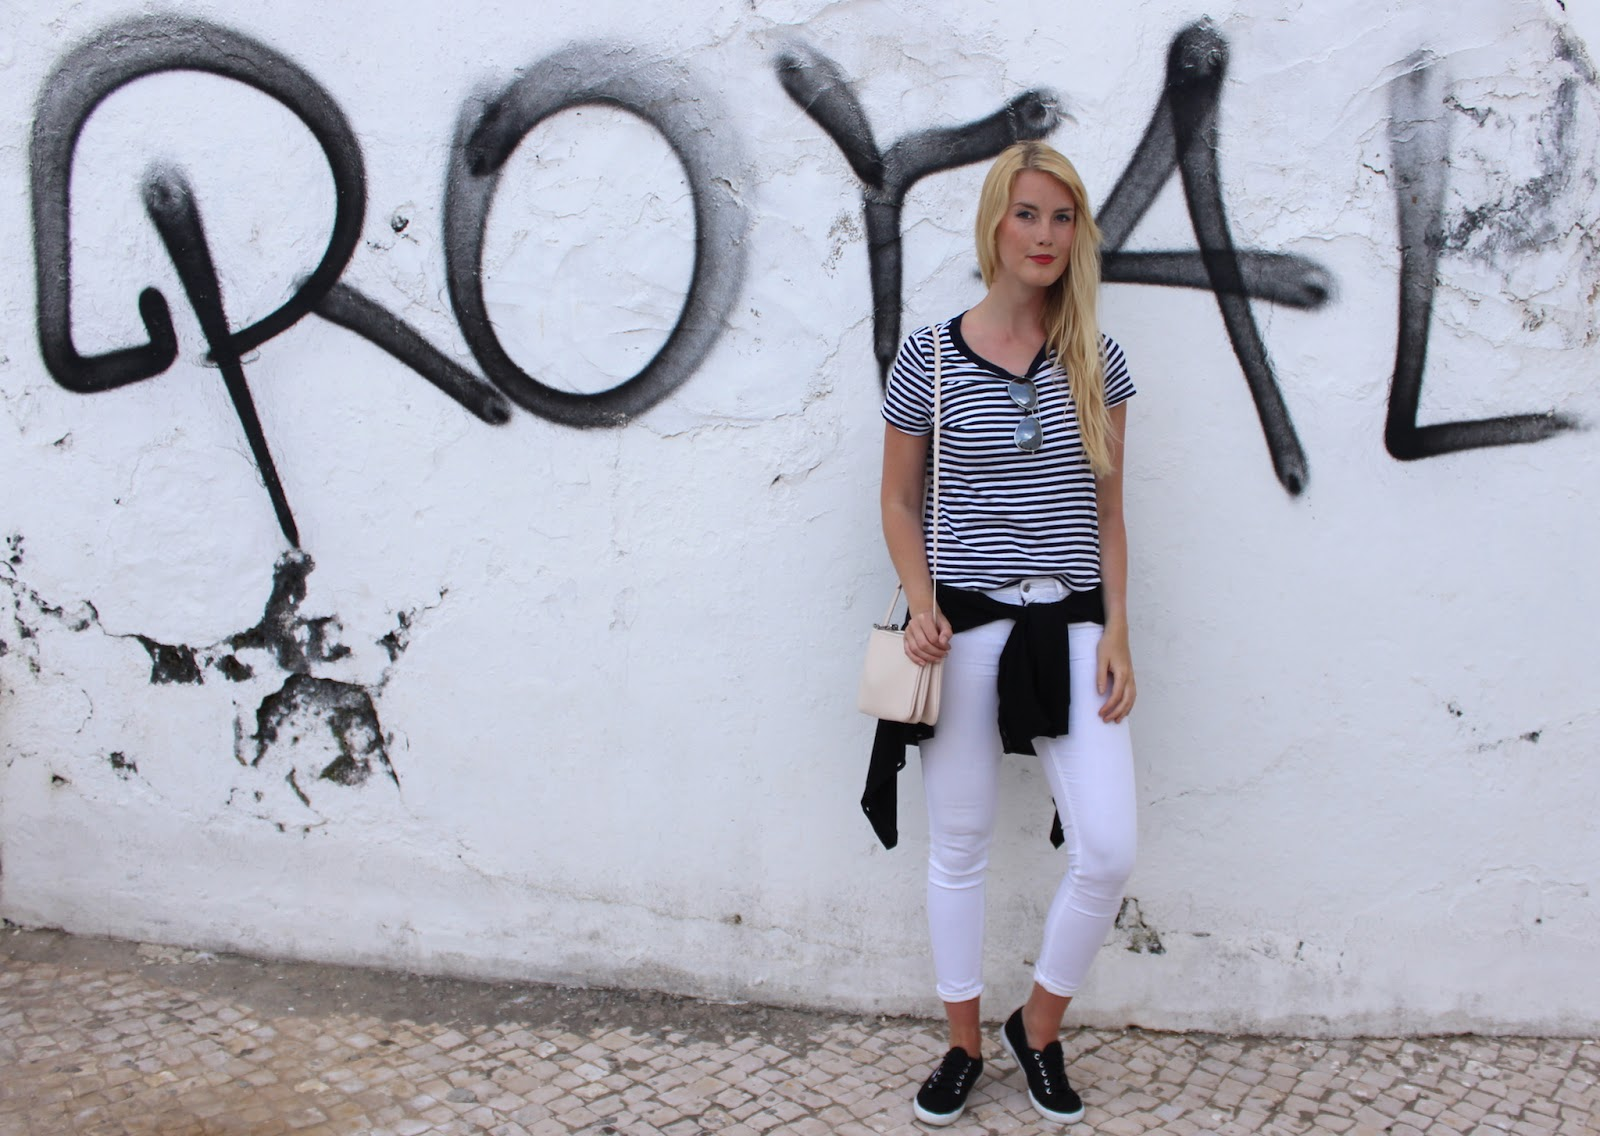 TheBlondeLion Superga Sneakers Stripes red lips white Algarve Travel Albufeira